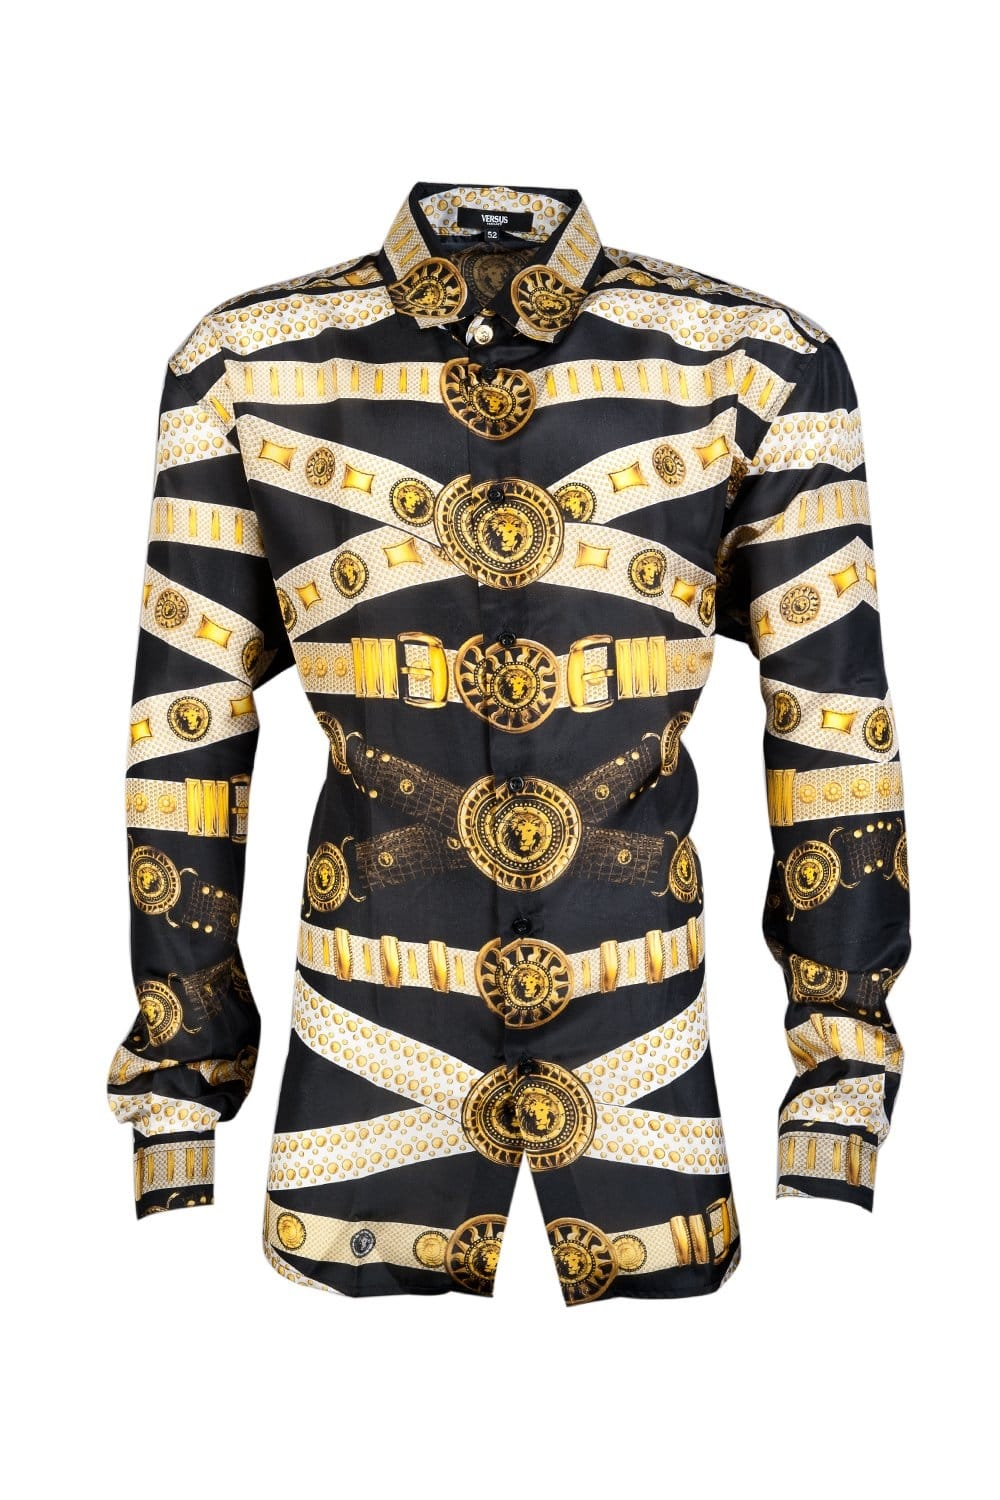 buy versace silk shirts